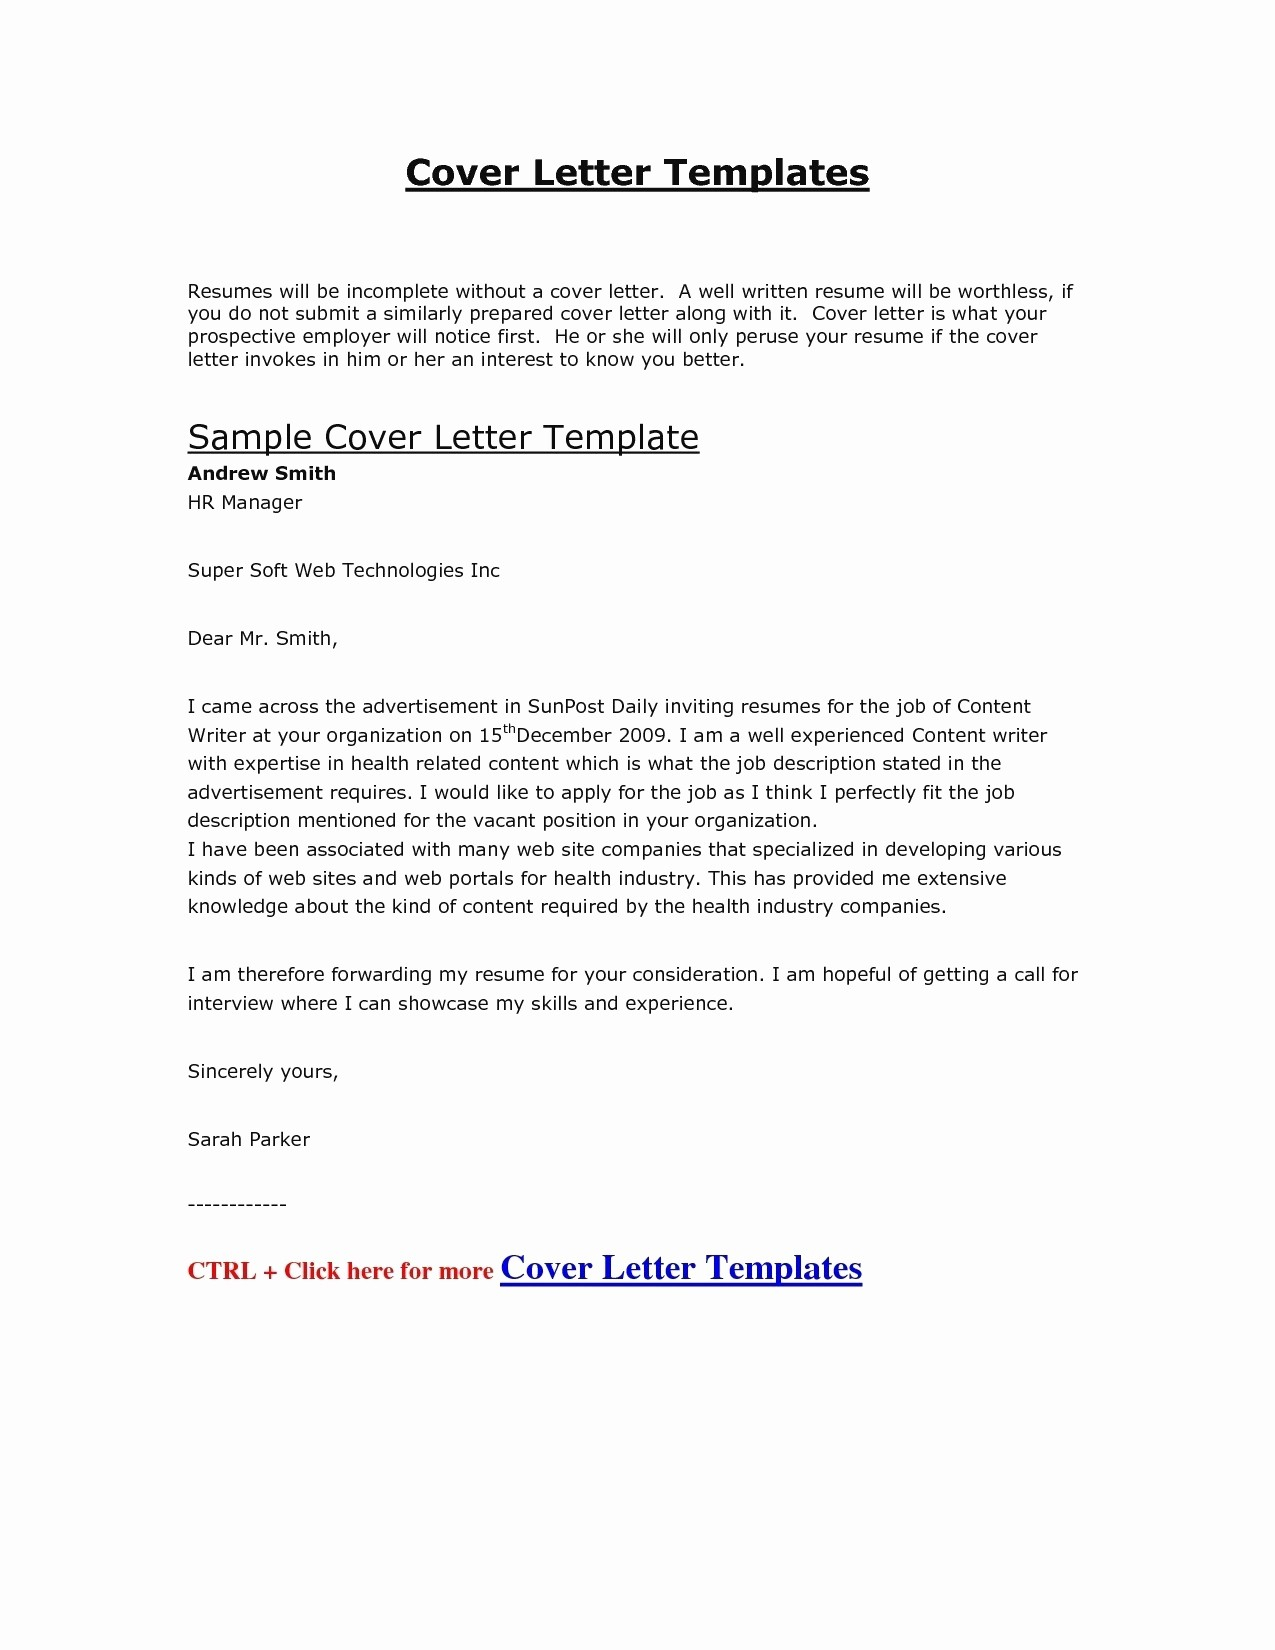 formal cover letter template Collection-Job Application Letter format Template Copy Cover Letter Template Hr Fresh A Good Cover Letter Sample 15-k